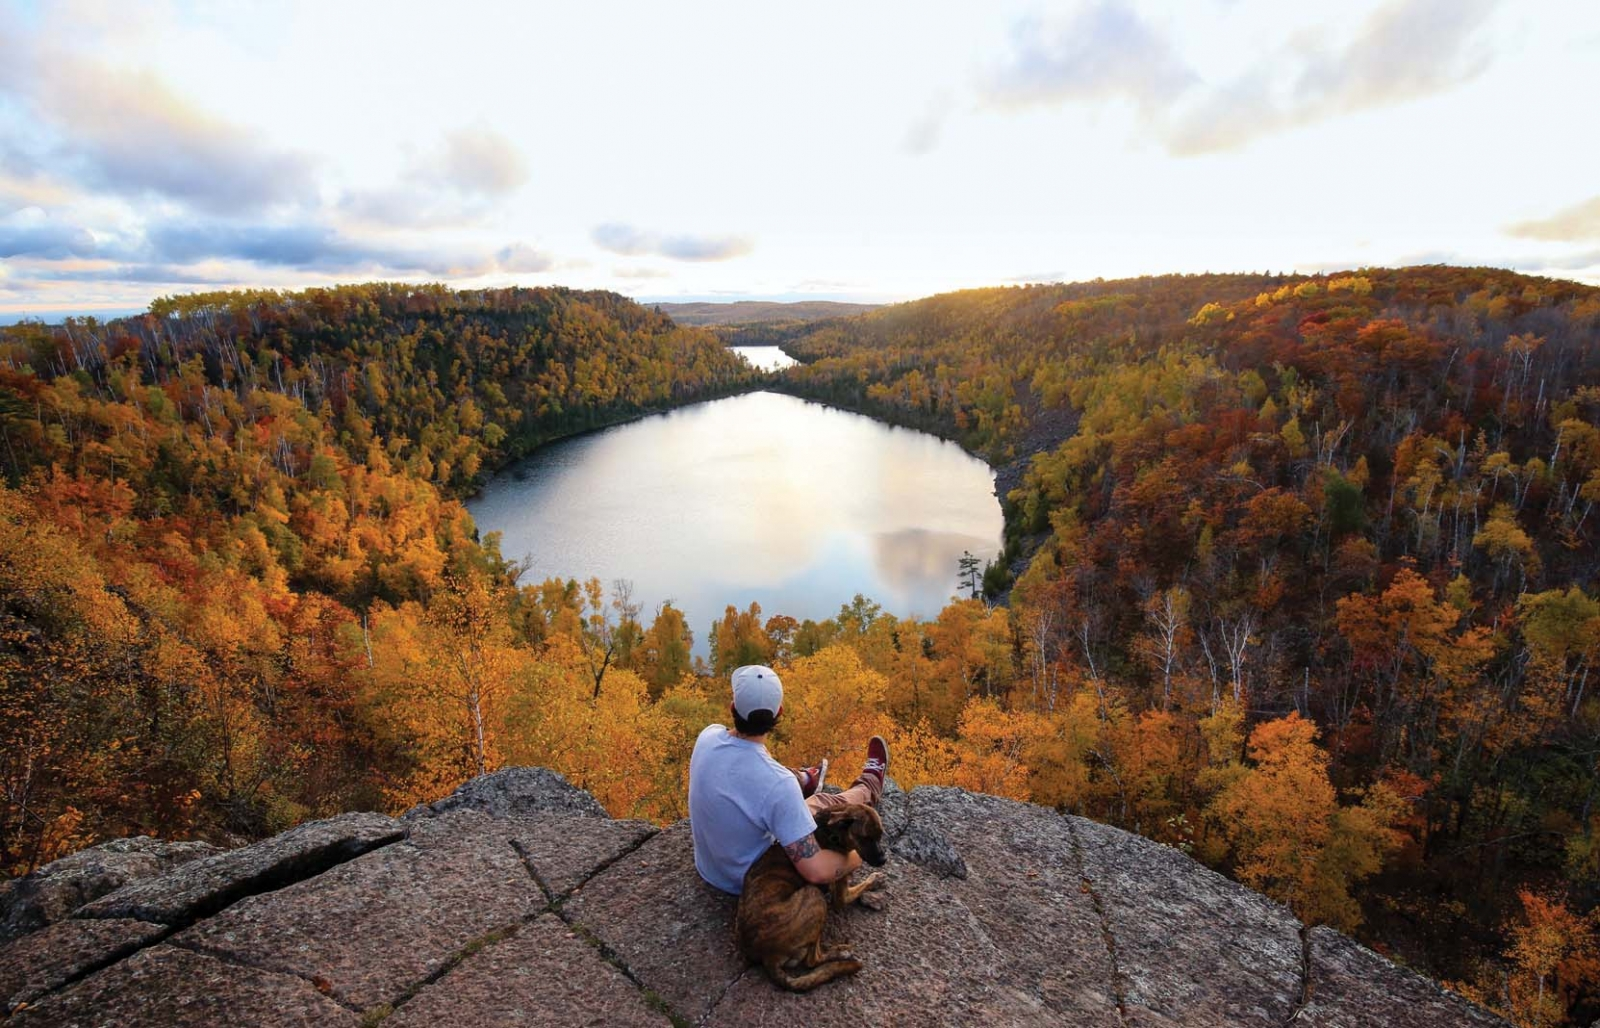 A man sitting on an overlook with a lake and trees in the background.